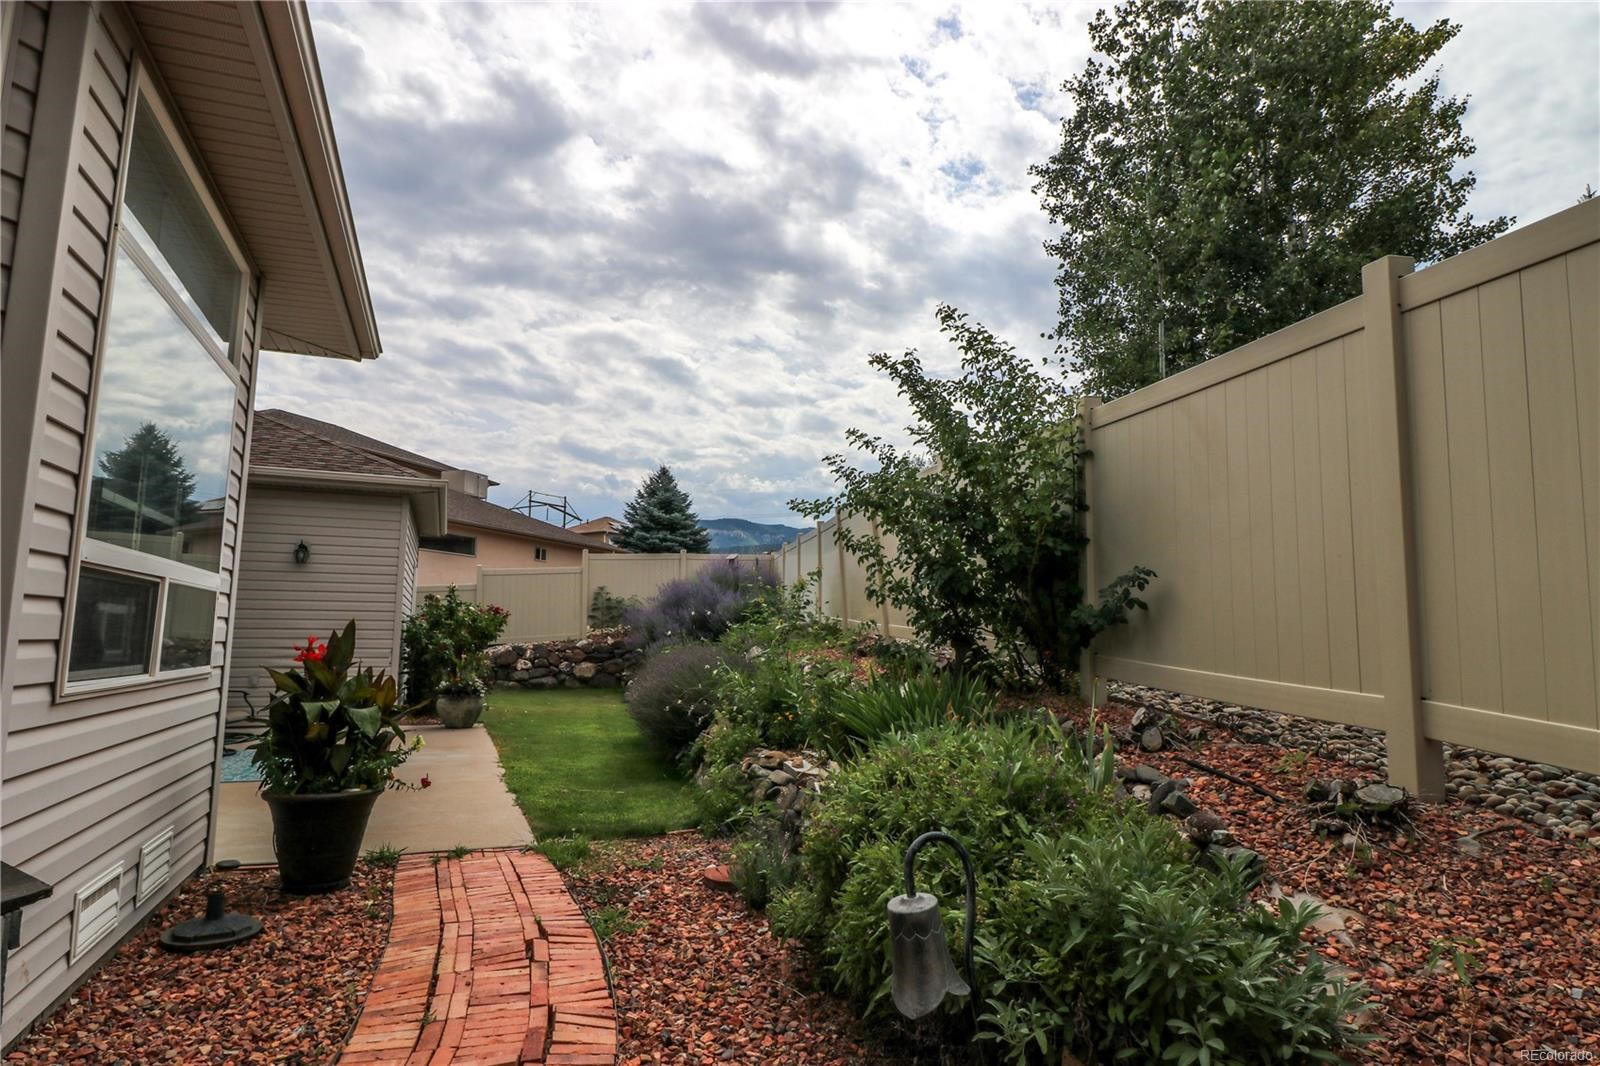 MLS# 3429914 - 222  Lodgepole Circle, Parachute, CO 81635